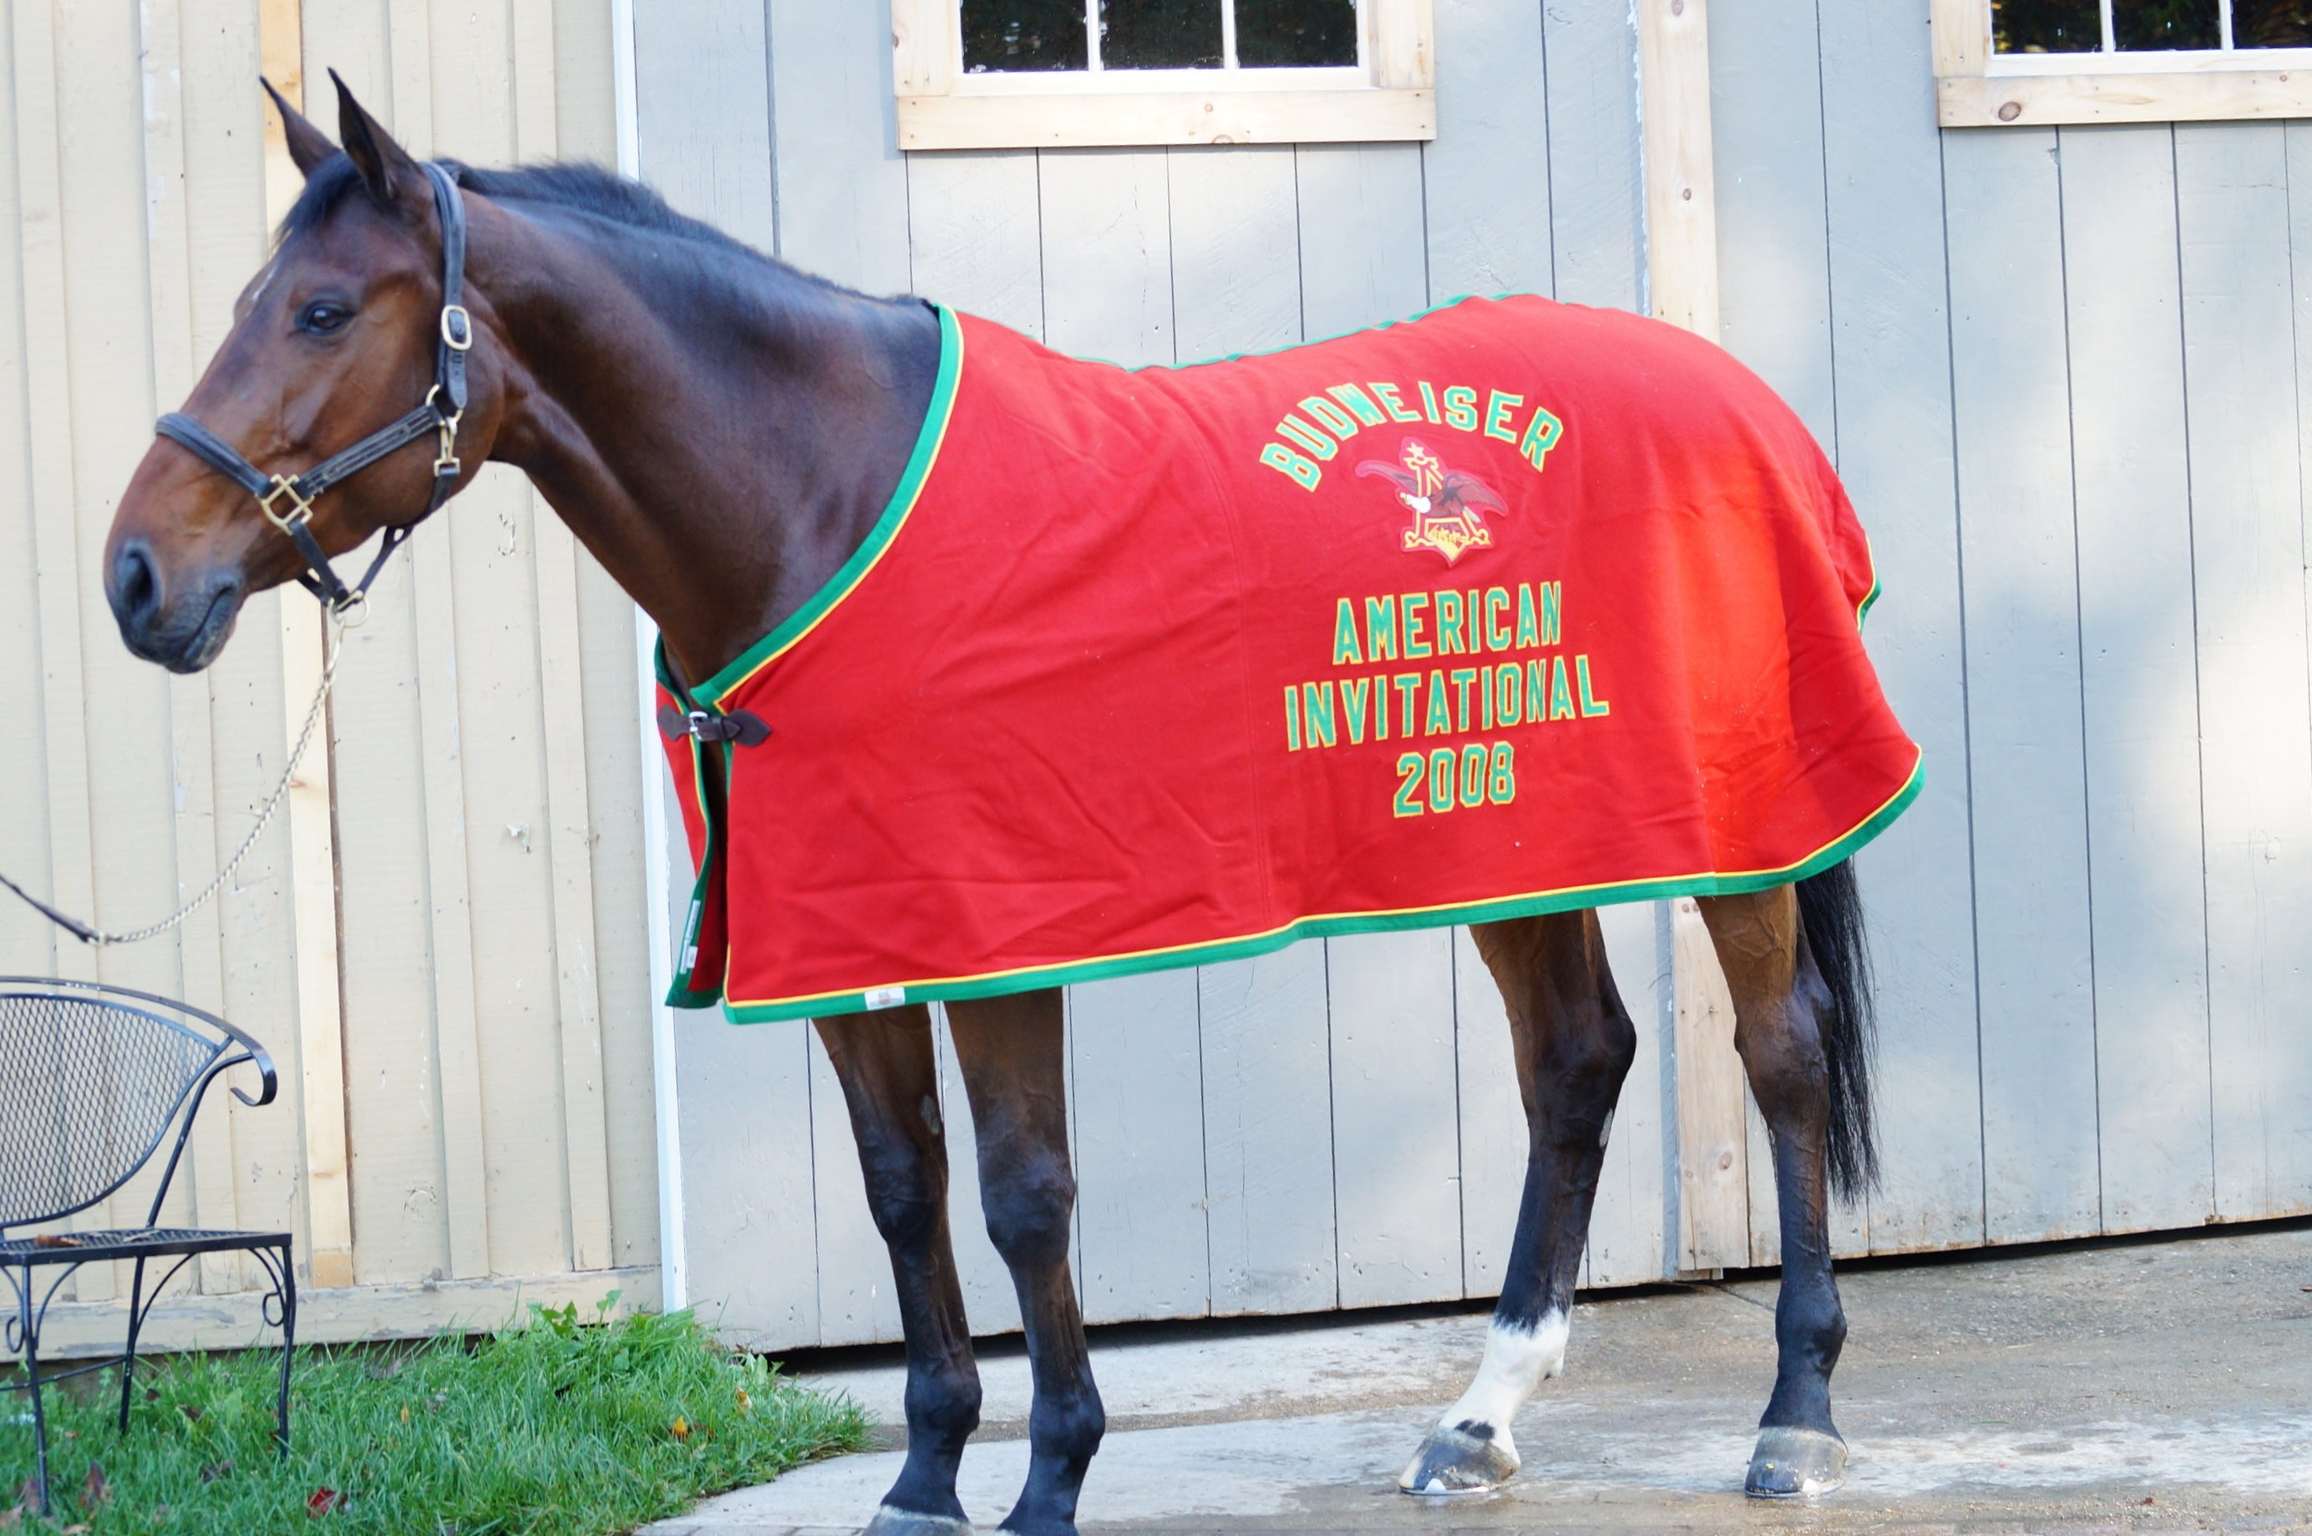 Gwen models Sapphire's American Invitational championship cooler. Photo by Kelli A. Kelliher